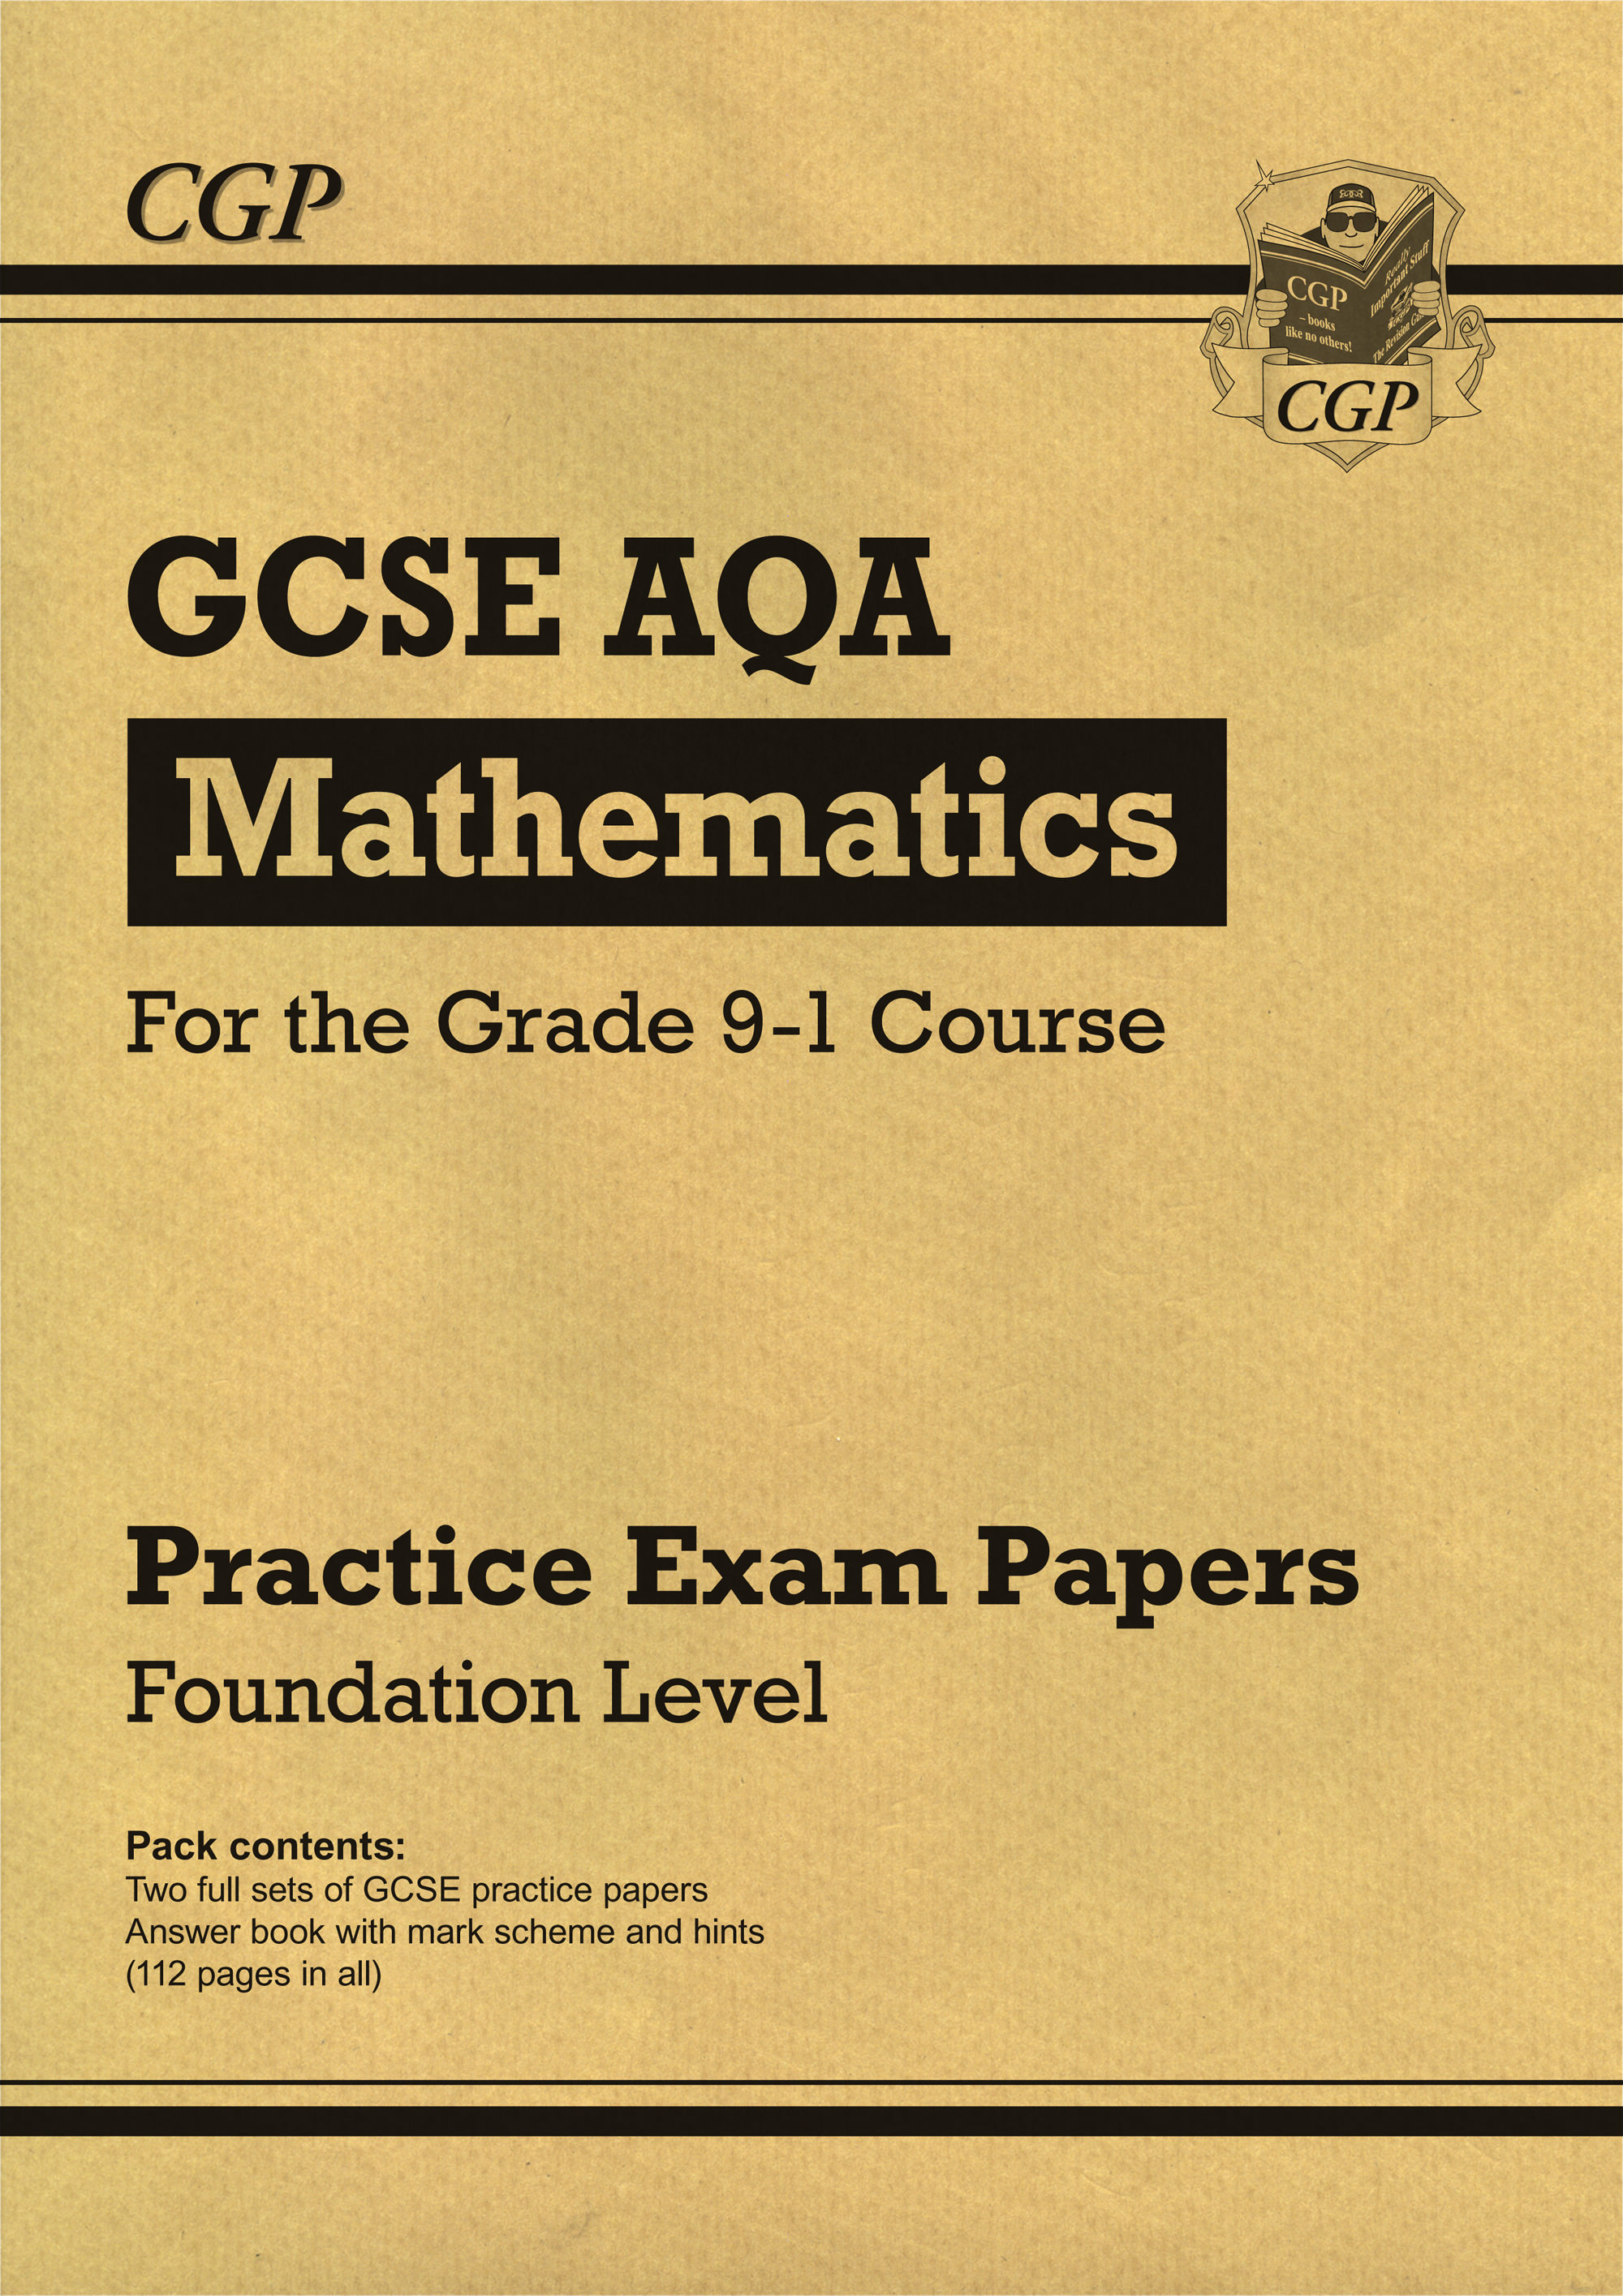 MQFP43 - New GCSE Maths AQA Practice Papers: Foundation - for the Grade 9-1 Course